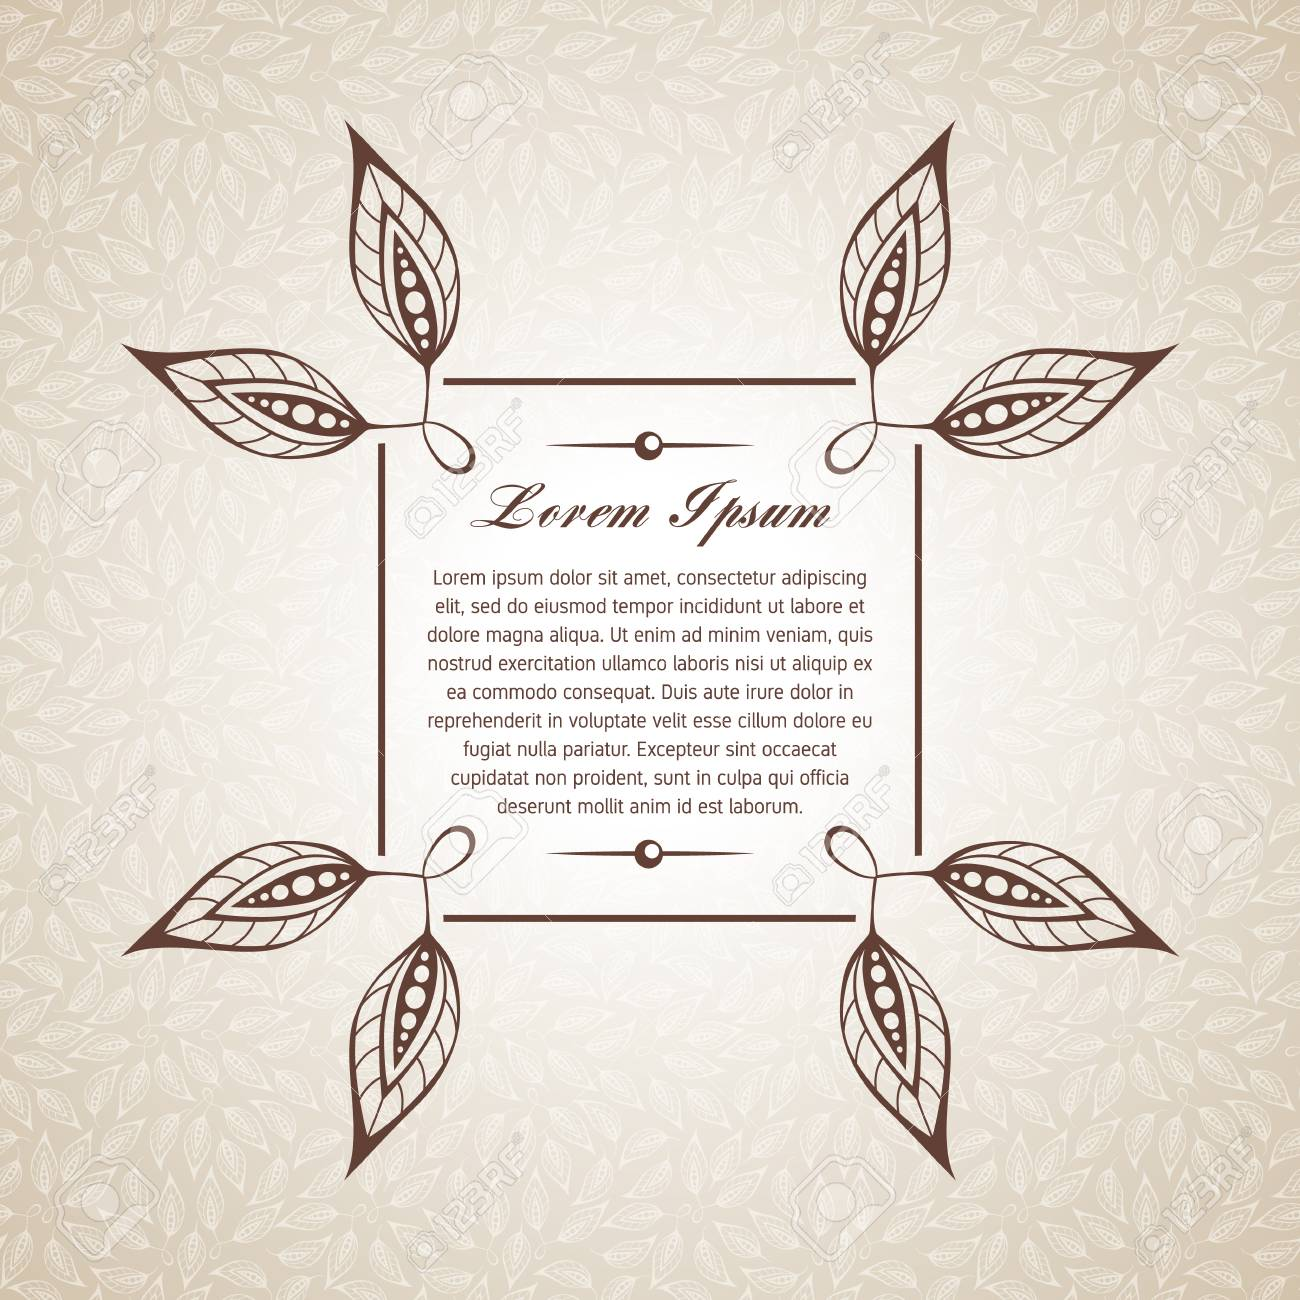 Template For Short Text Greeting Cards Invitations Menus